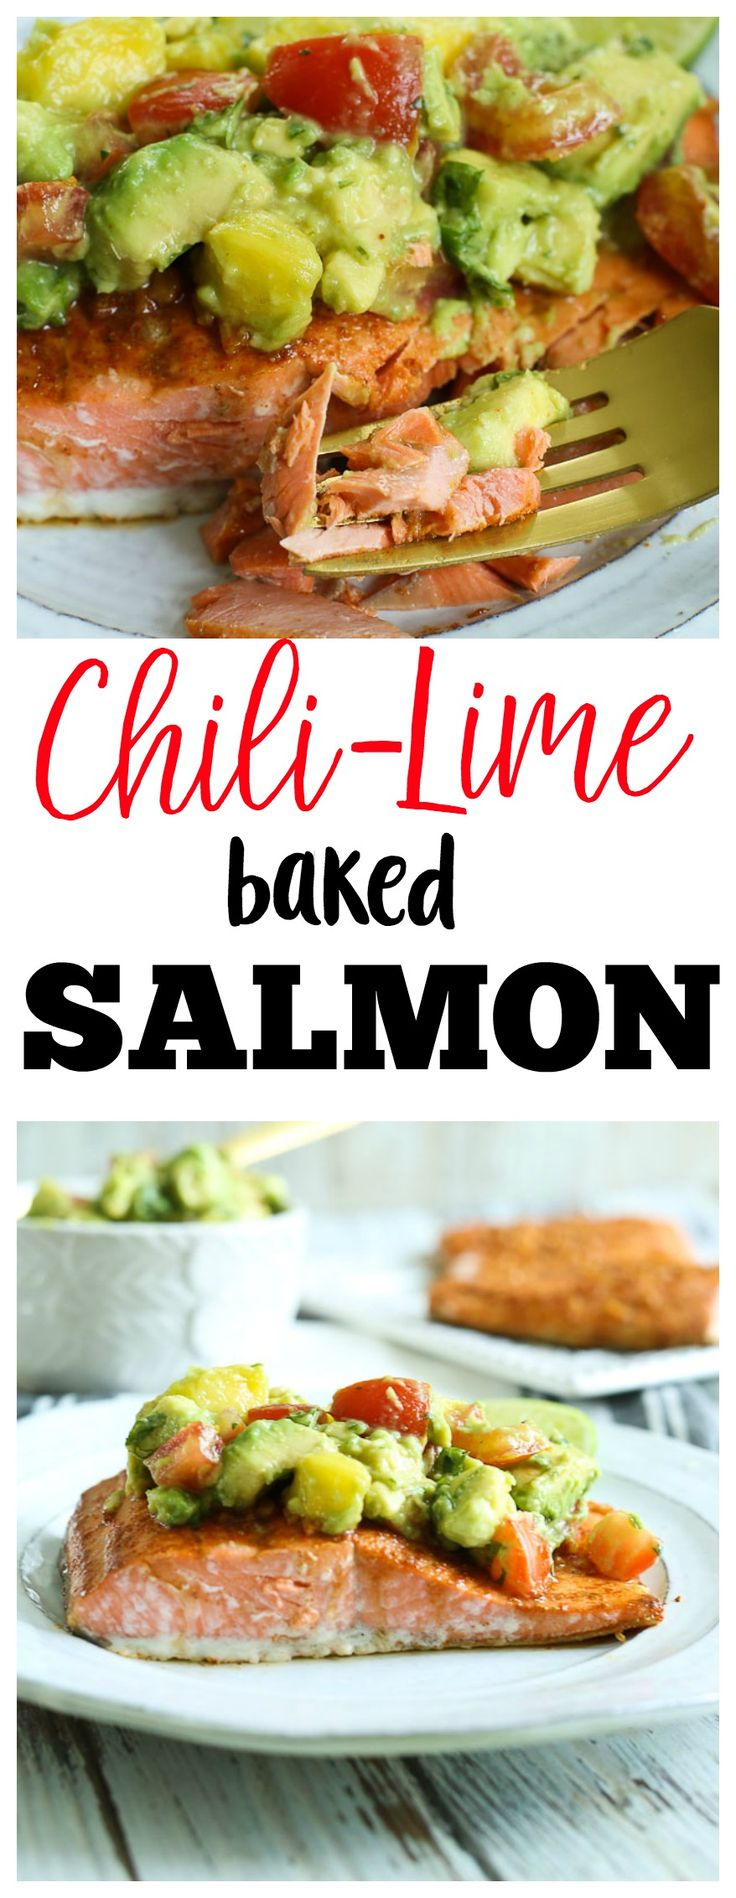 Chili Lime Baked Salmon recipe topped with Avocado Pineapple Salsa--SO good! | healthy dinners | Paleo dinners | gluten-free dinners | weeknight dinners | quick and easy dinners | whole30 dinners